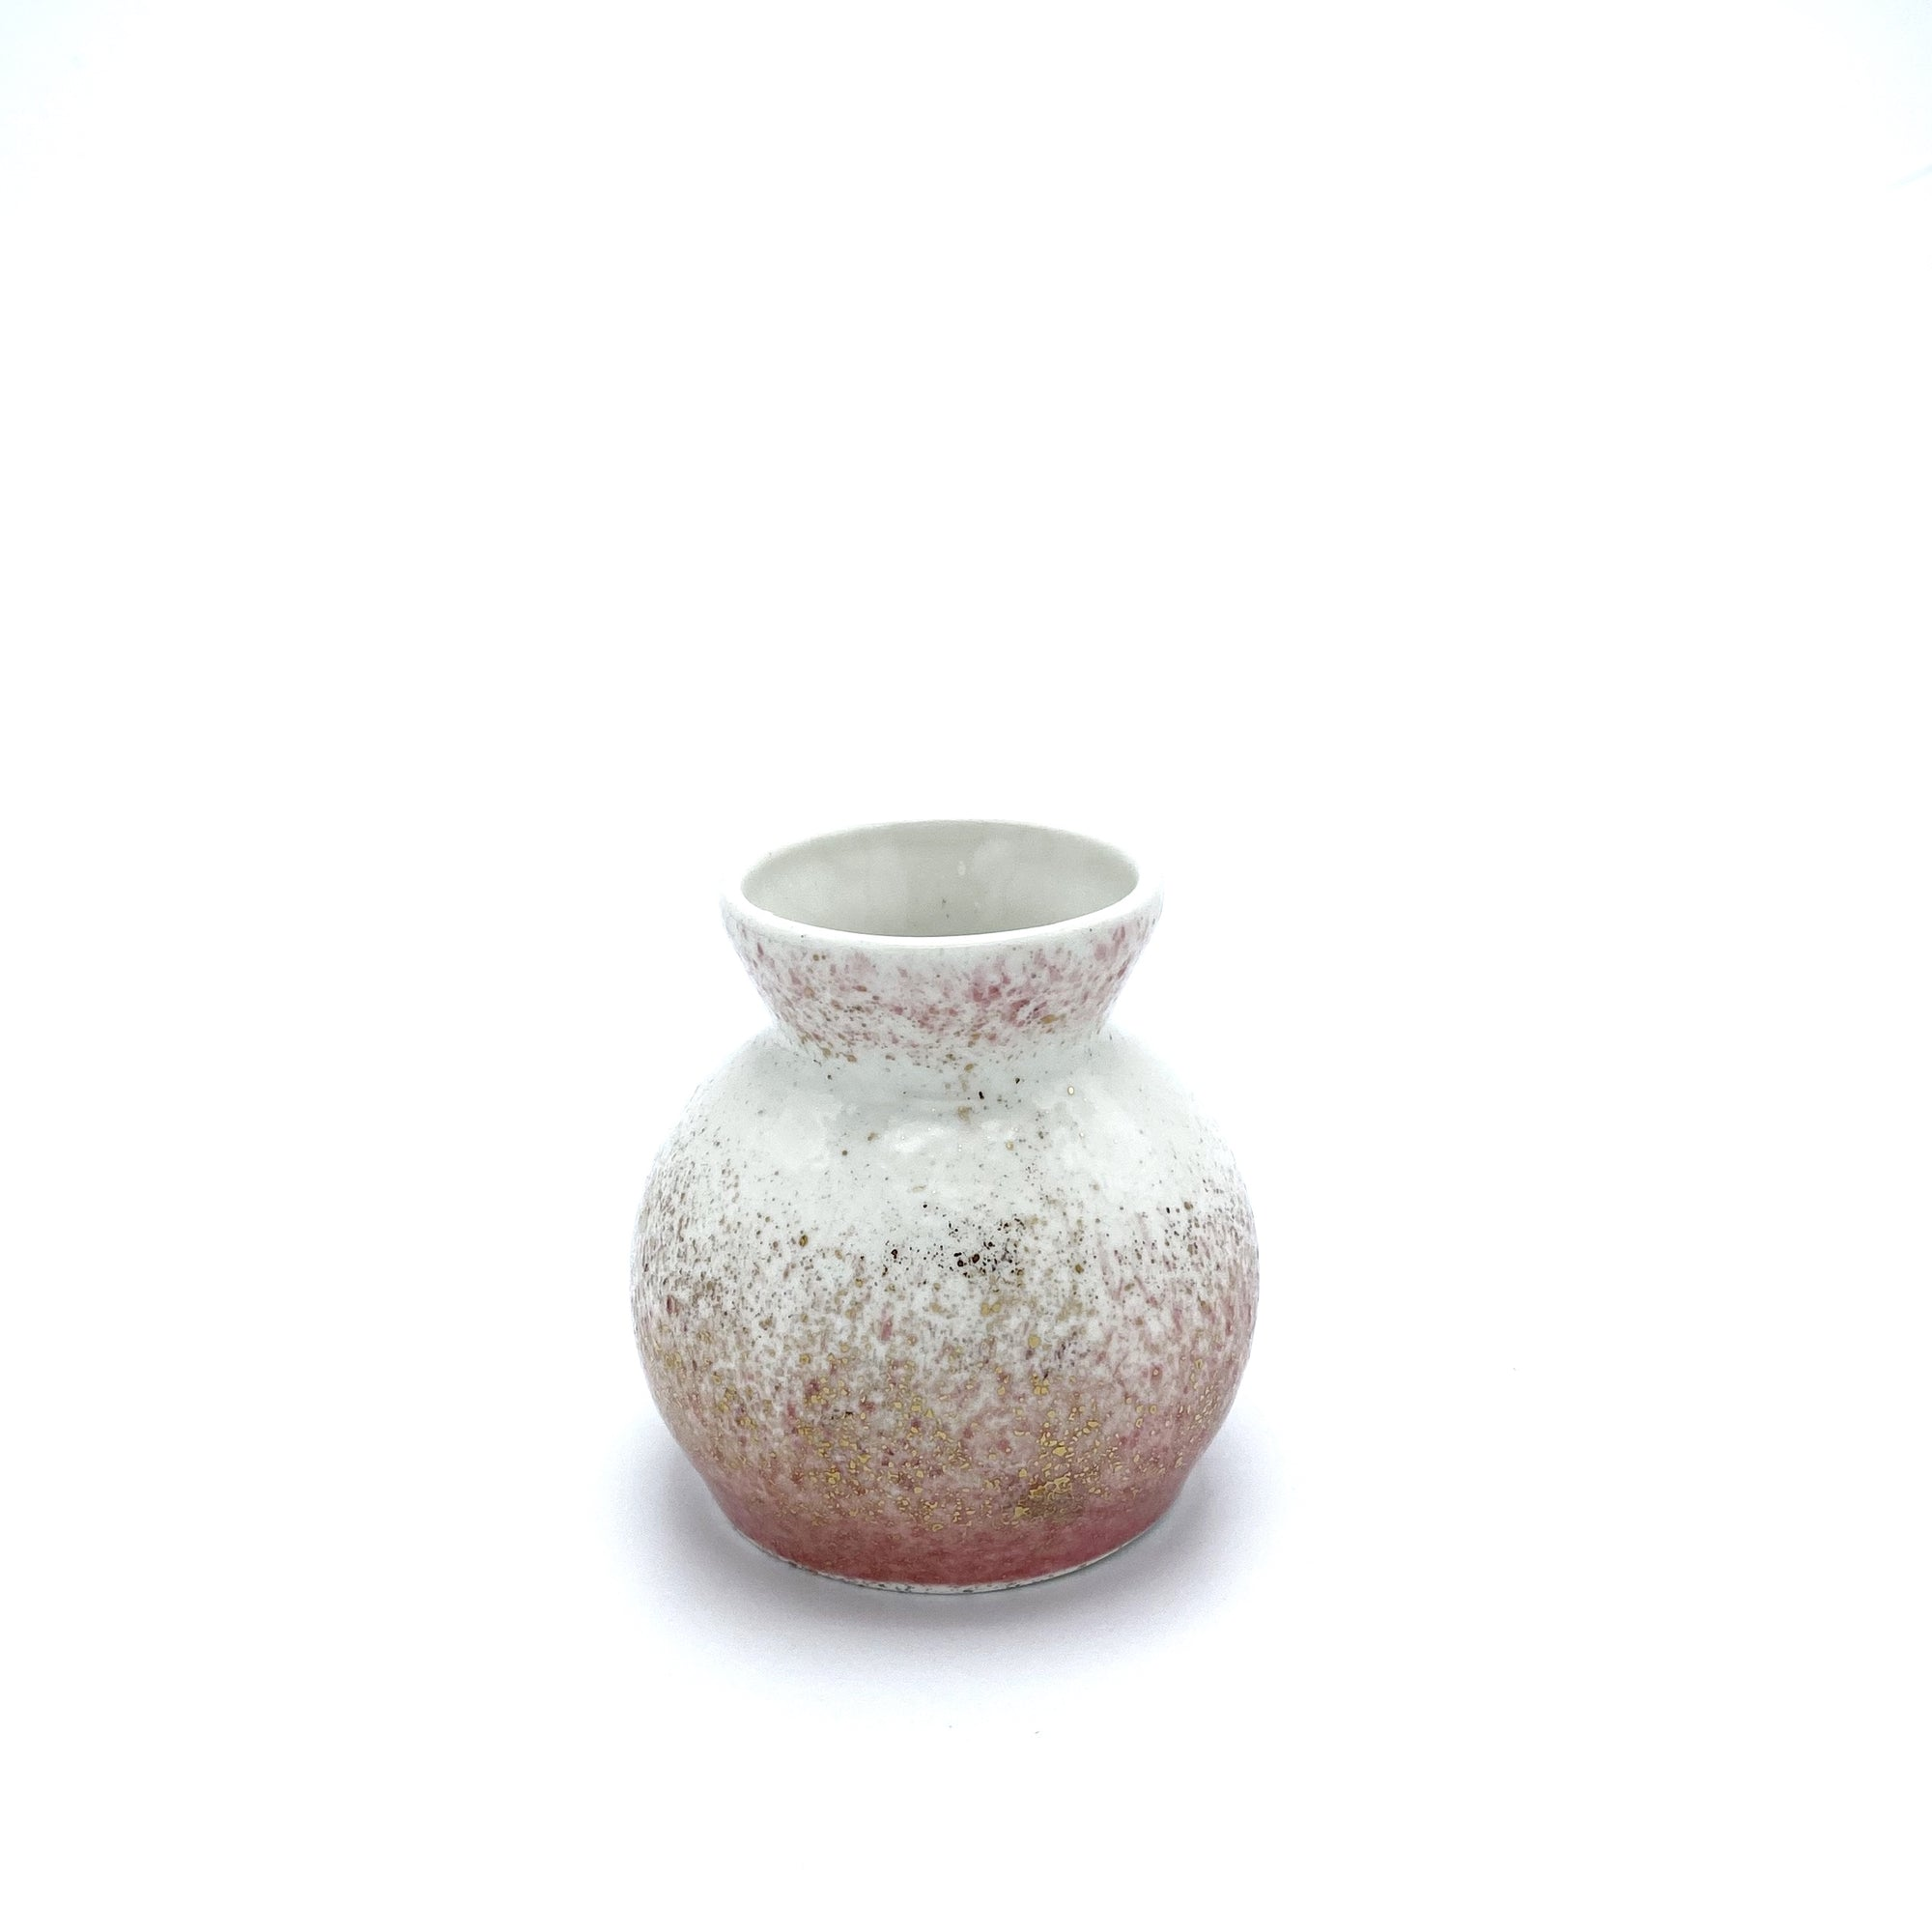 DAYNEW - Kaolin - small circus ball vase